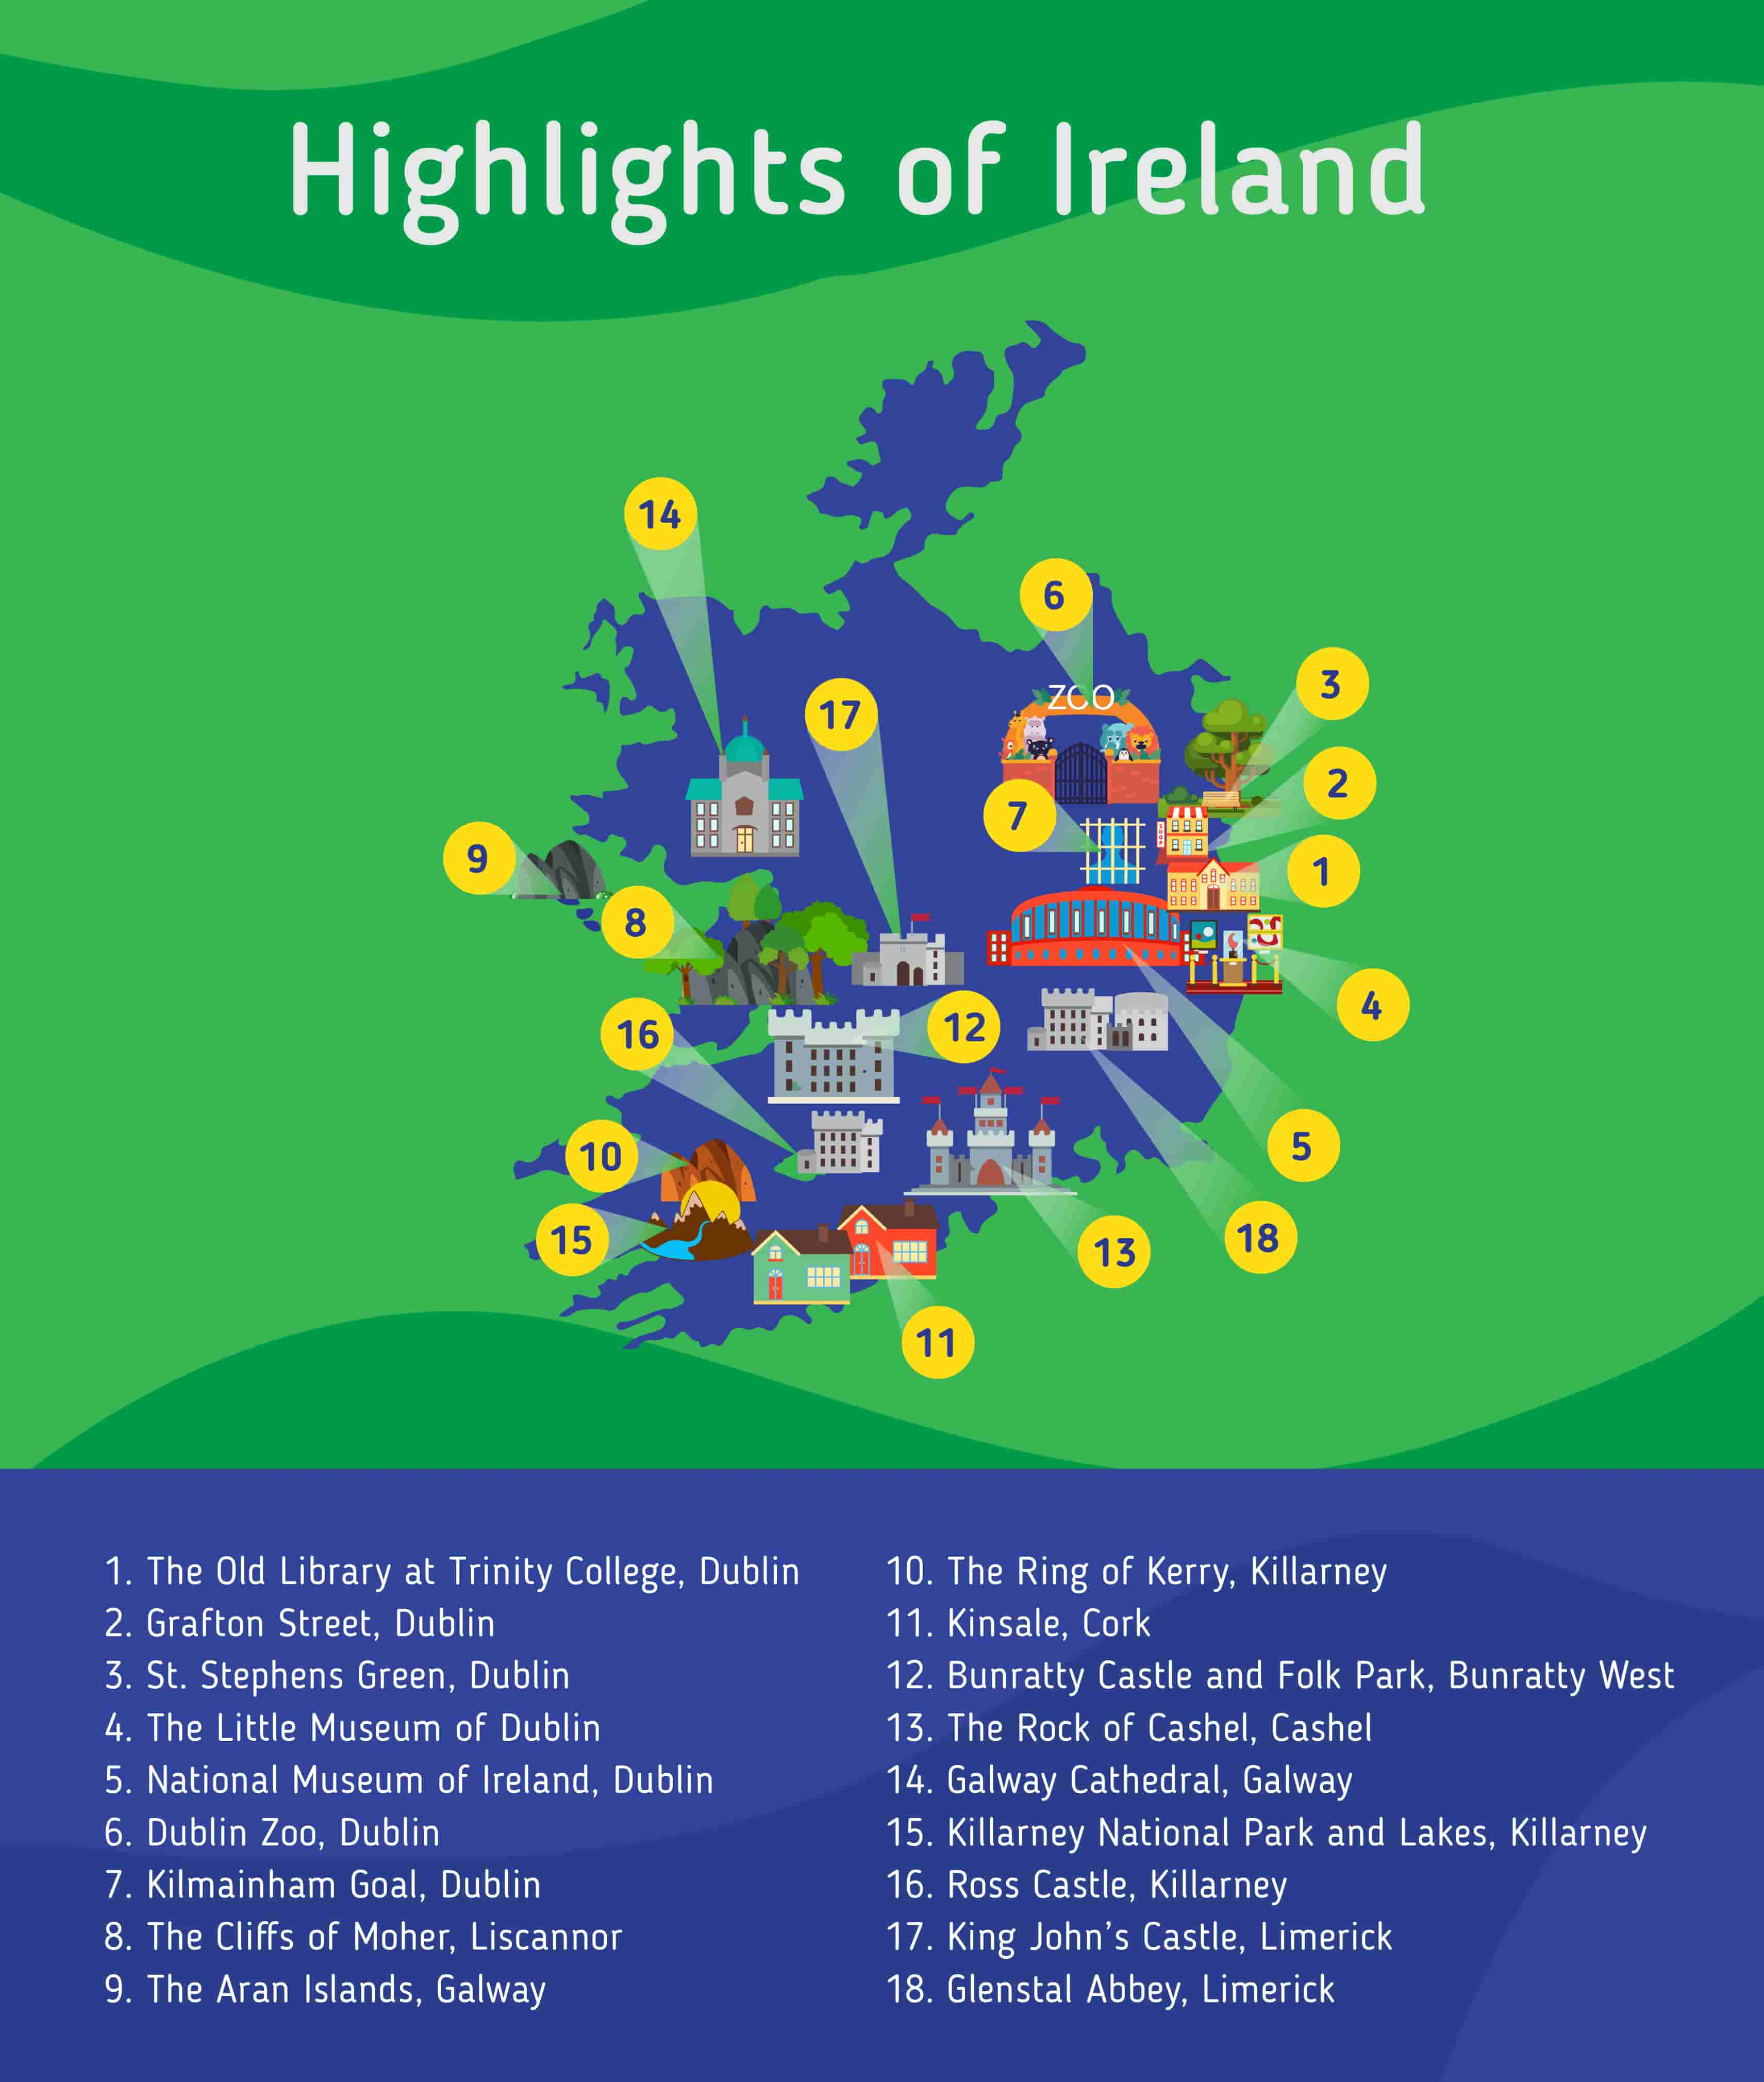 Study in Ireland - Top Universities, Courses, Tuition Fees